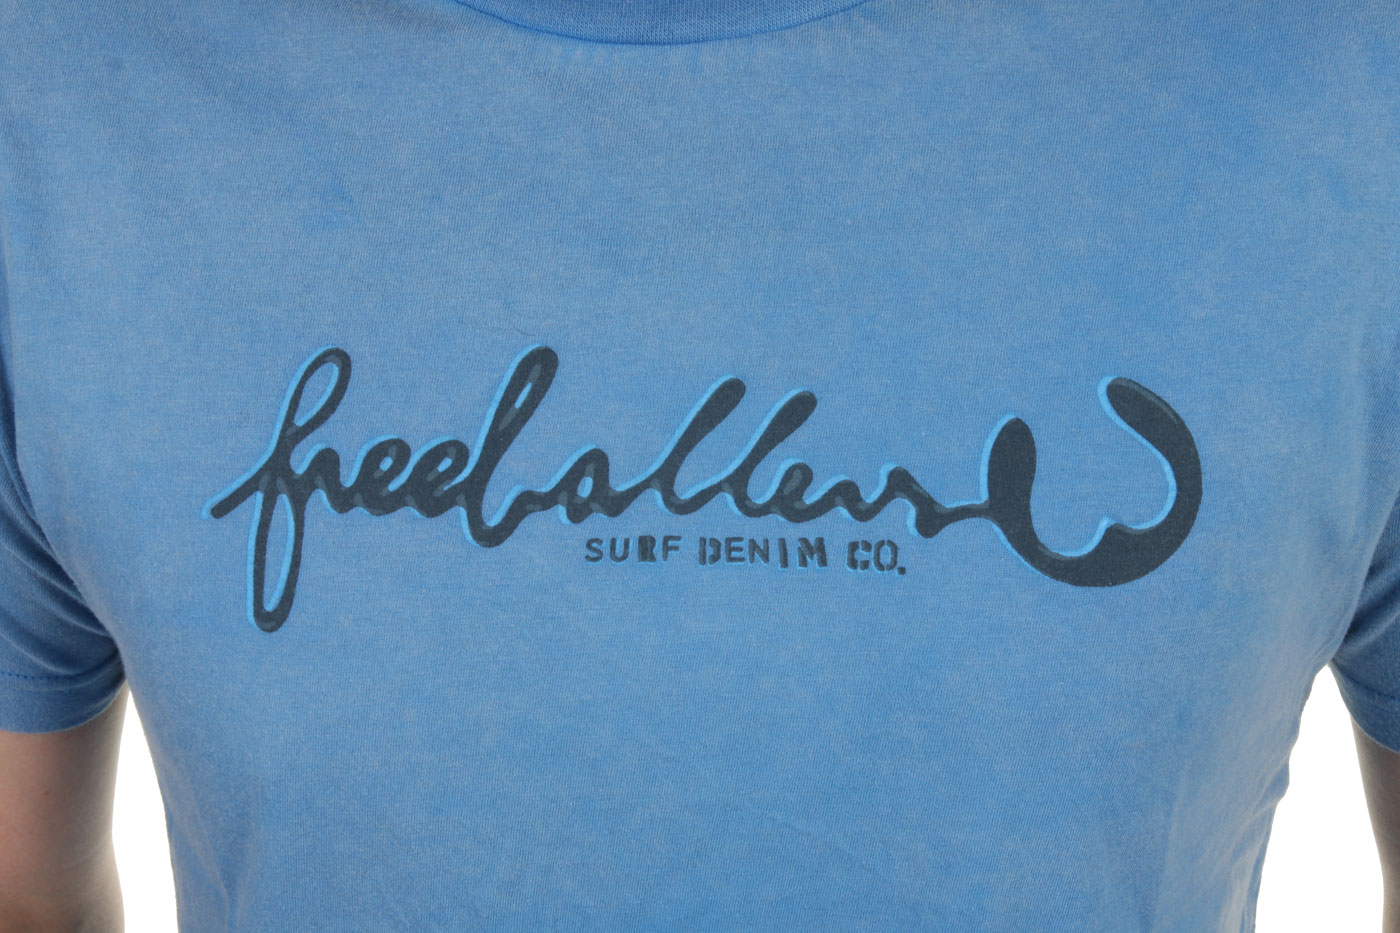 Freeballer Pics http://www.skatedeluxe.de/en/freeballers-team-t-shirt-washed-blue_p13045